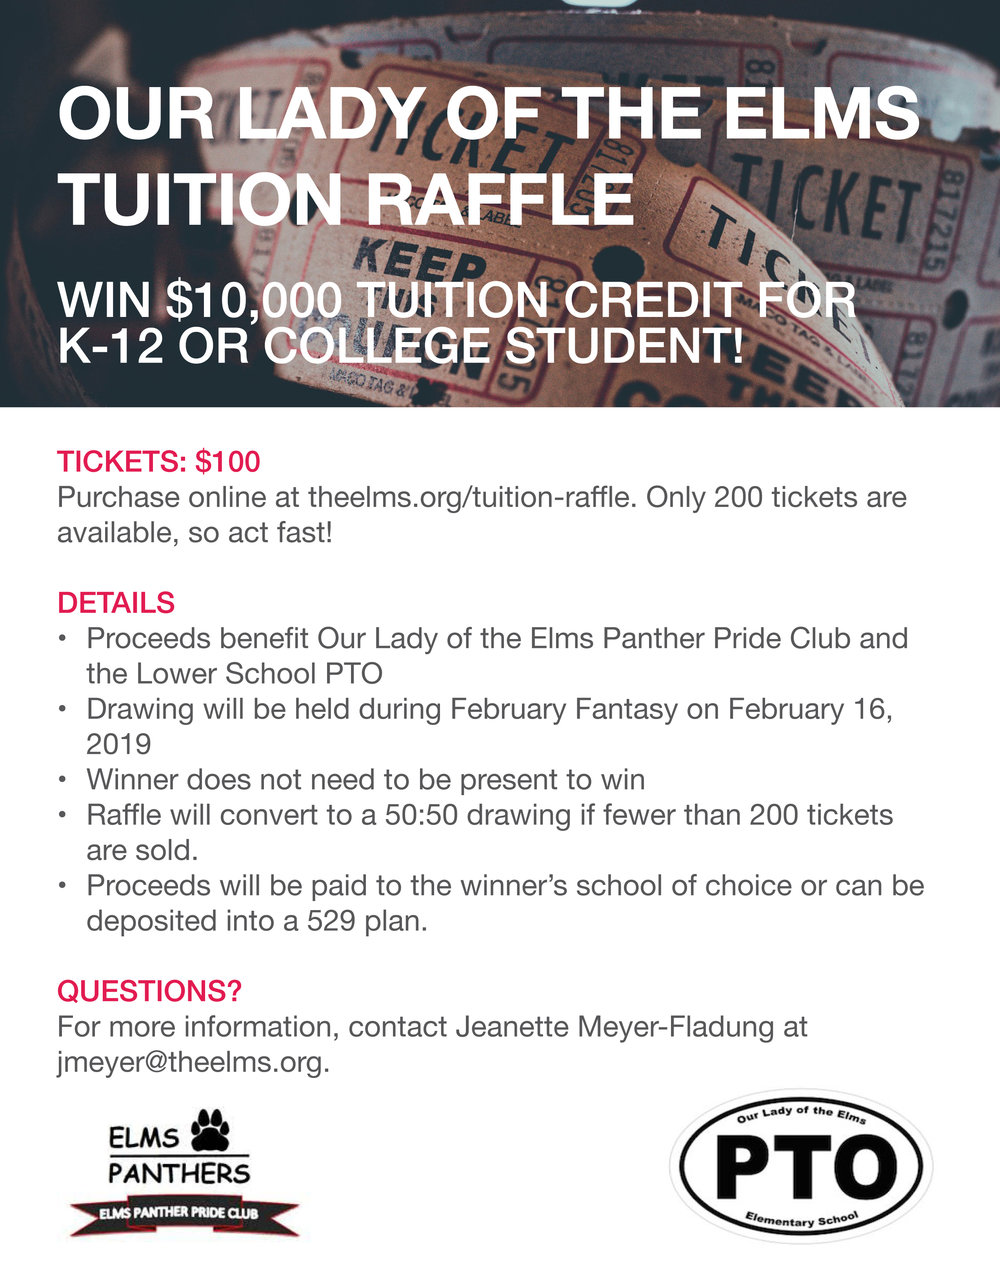 Elms_tuitionraffle_flyer 18-19.jpg